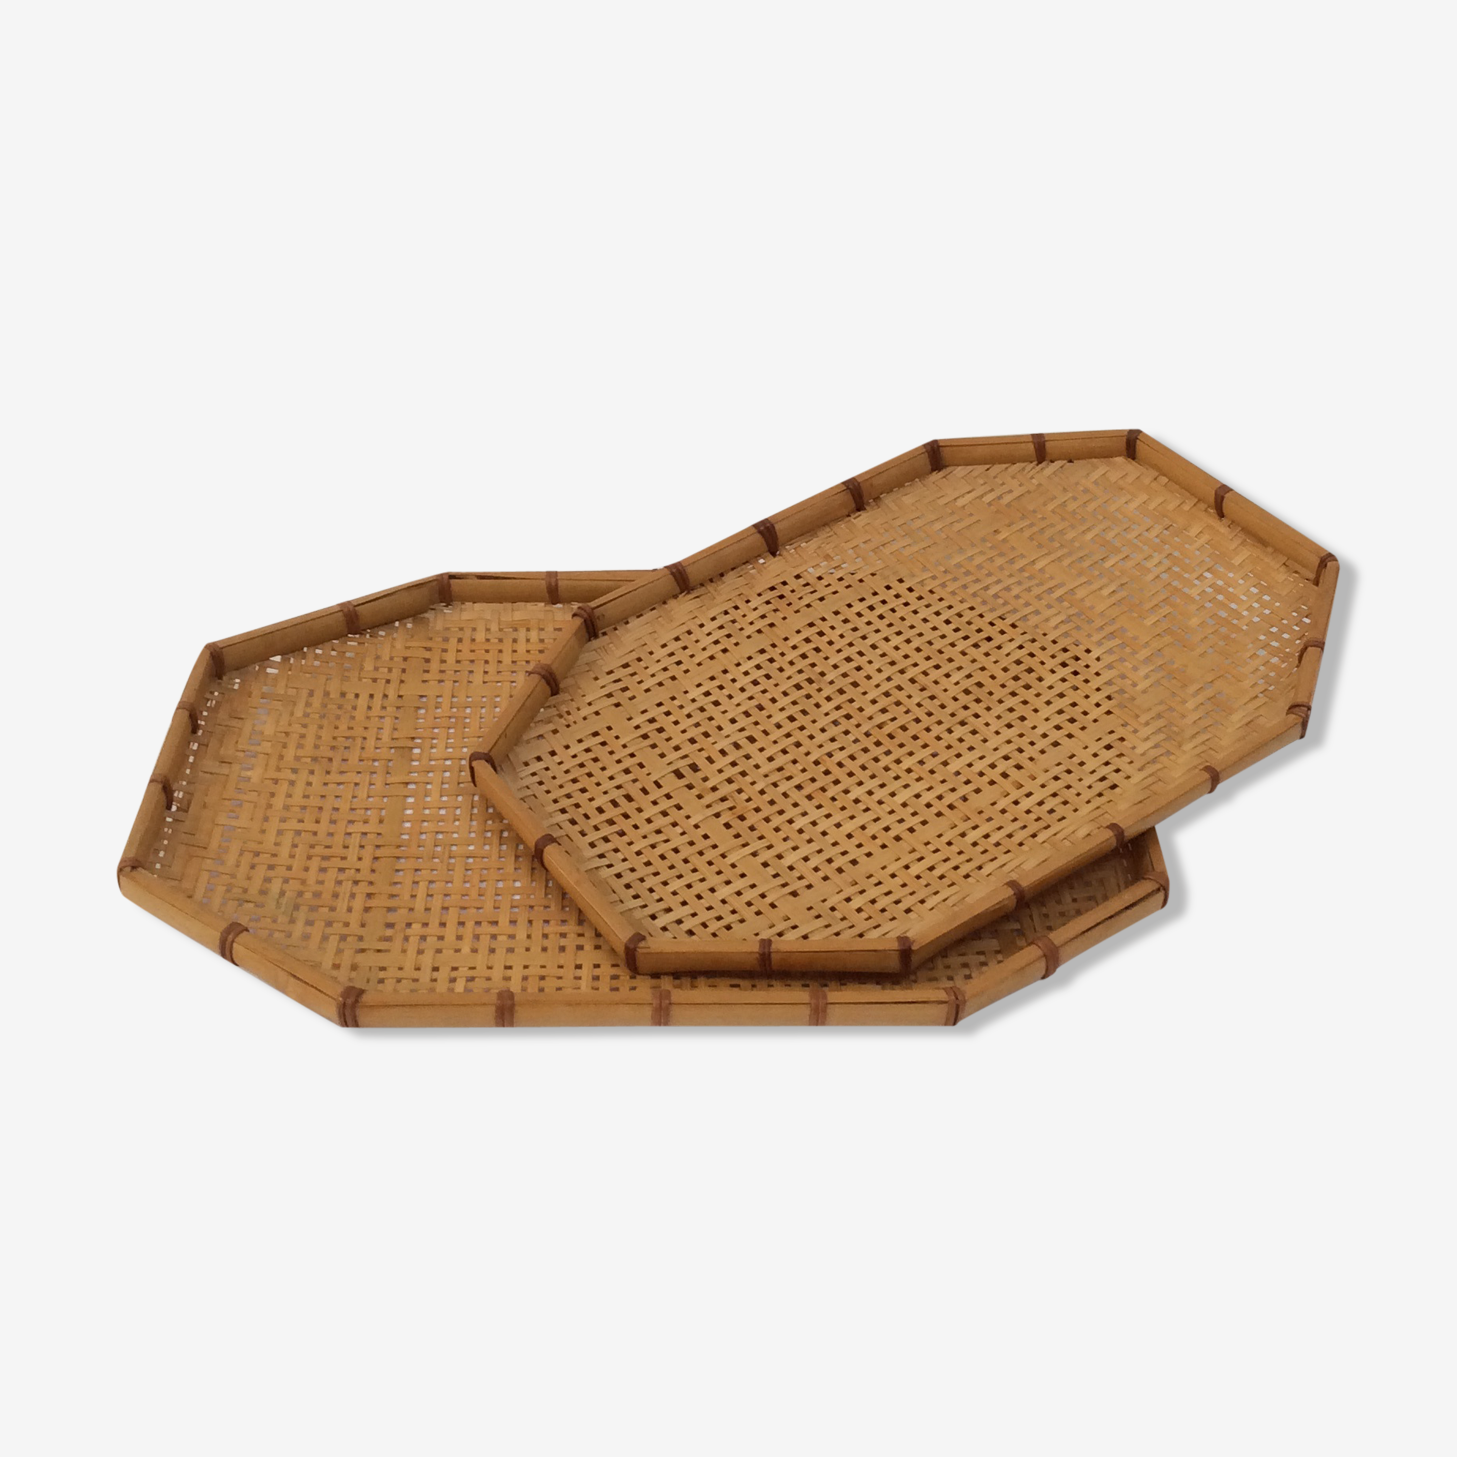 Pull-out trays in braided rattan duo